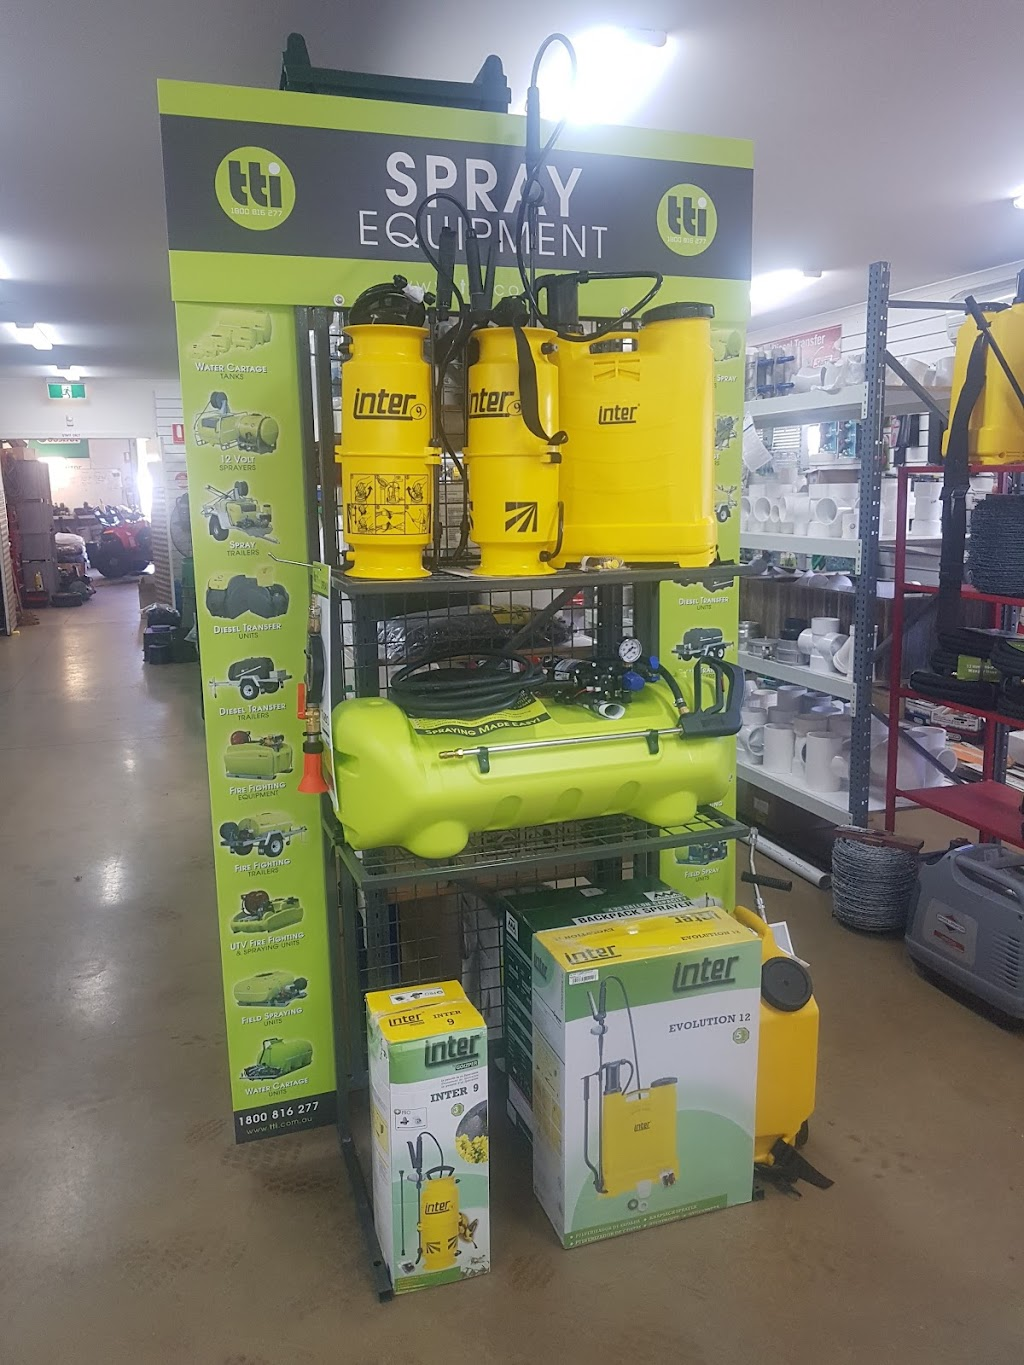 Statewide Irrigation & Rural Supplies | food | 84 Forest St, Castlemaine VIC 3450, Australia | 0354721135 OR +61 3 5472 1135